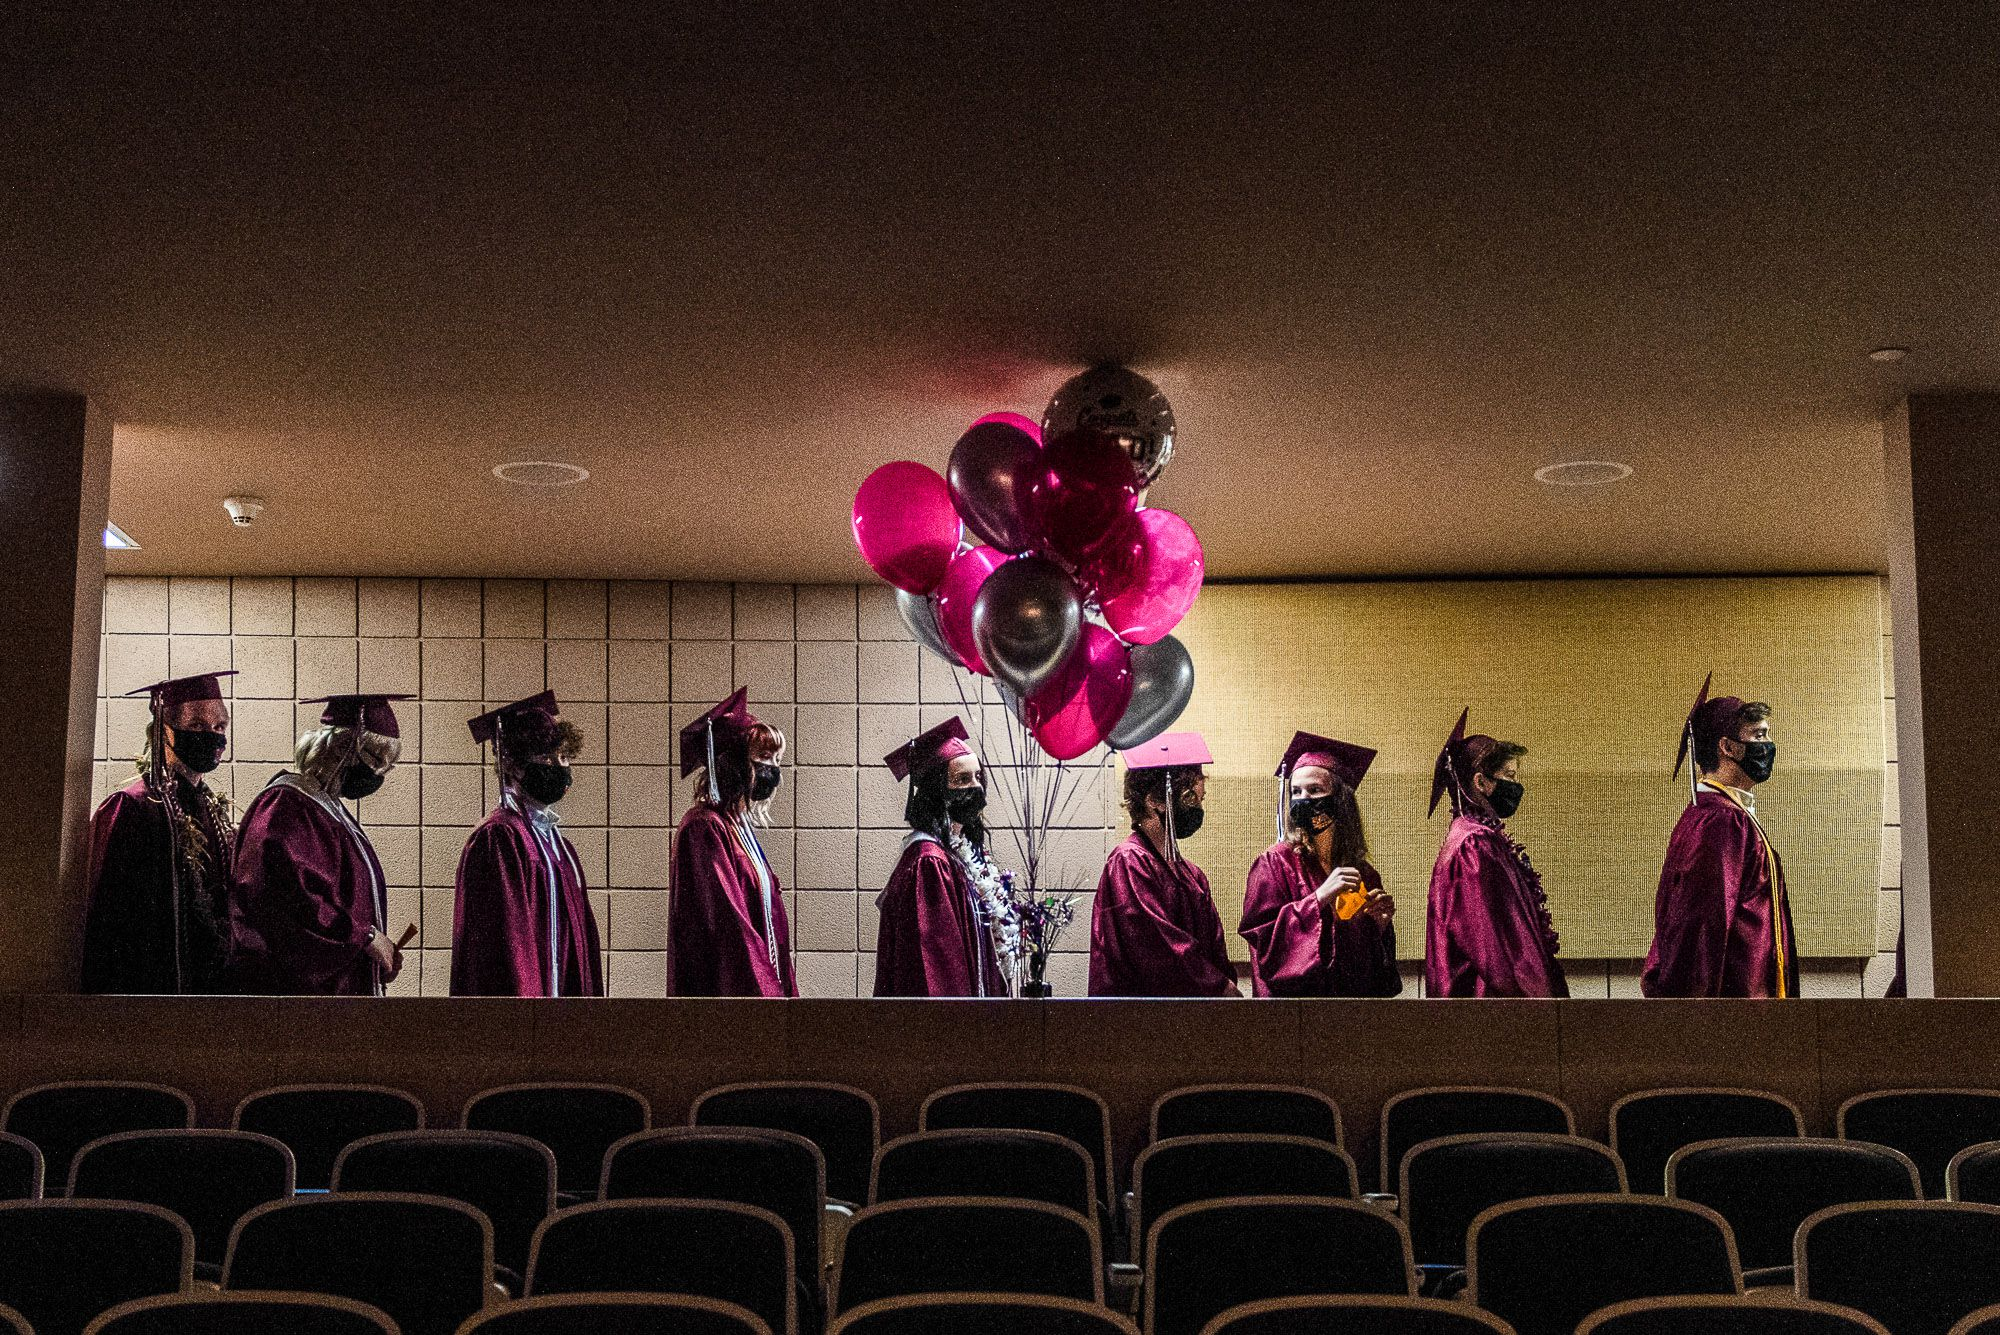 (Briana Scroggins | Special to The Tribune)  The Salt Lake School for the Performing Arts graduates line up before walking to their seats during graduation at Highland High School in Salt Lake City on Wednesday, June 2, 2021.